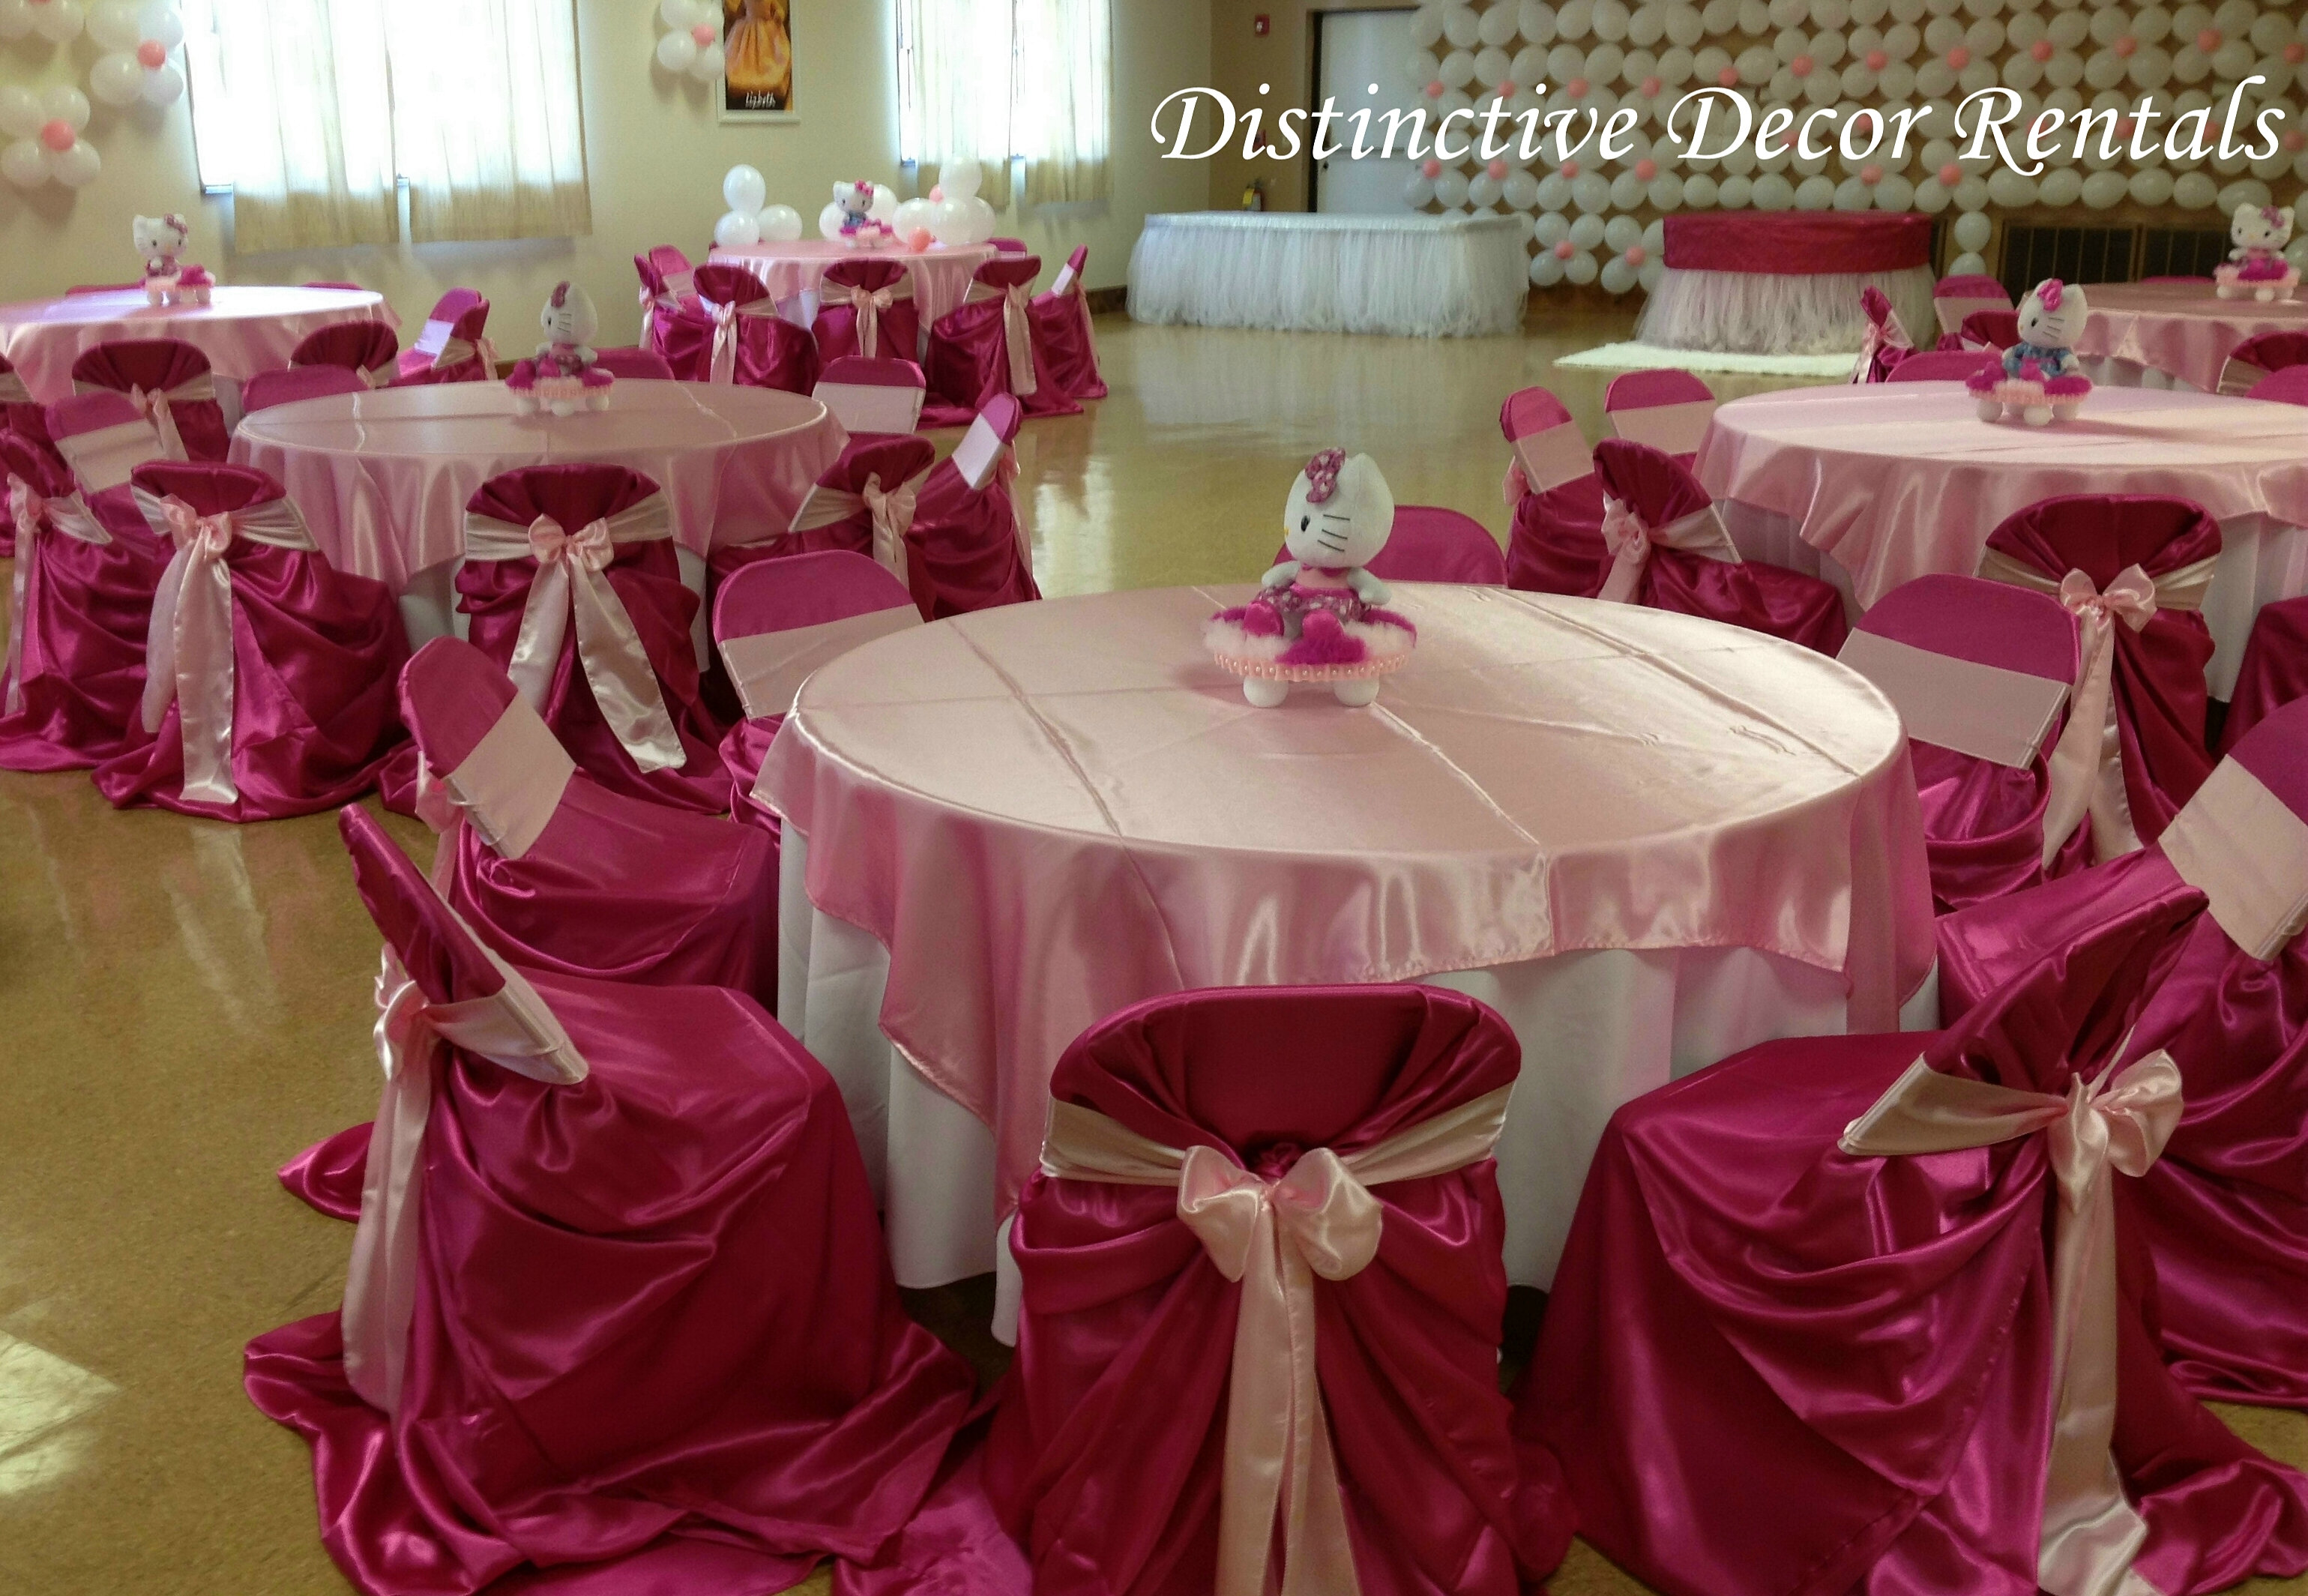 chair cover rentals boston ma meeting room chairs distinctive decor for all your parties and events